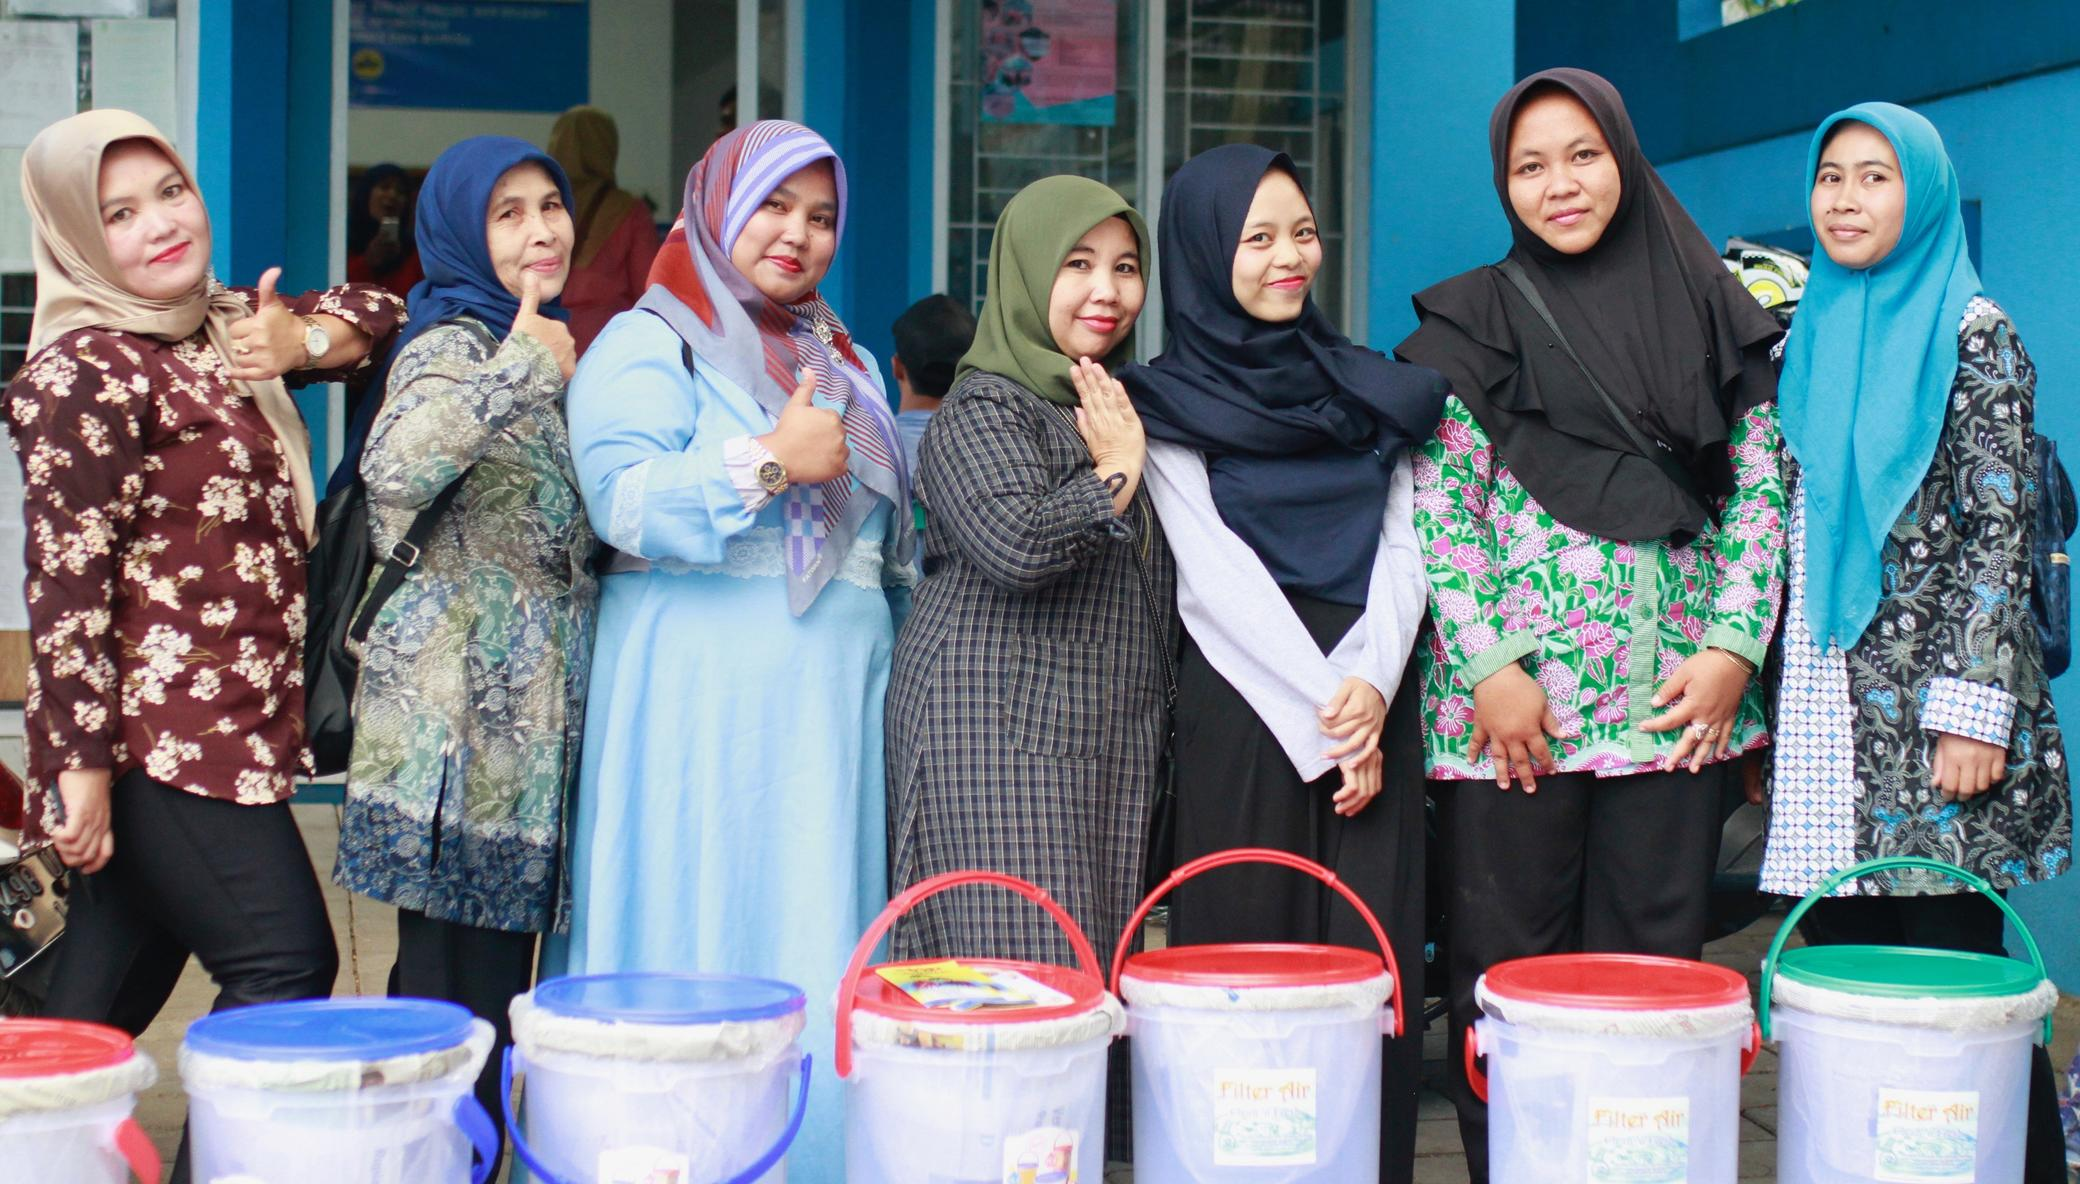 Provide Access to Clean Water for 600 Families